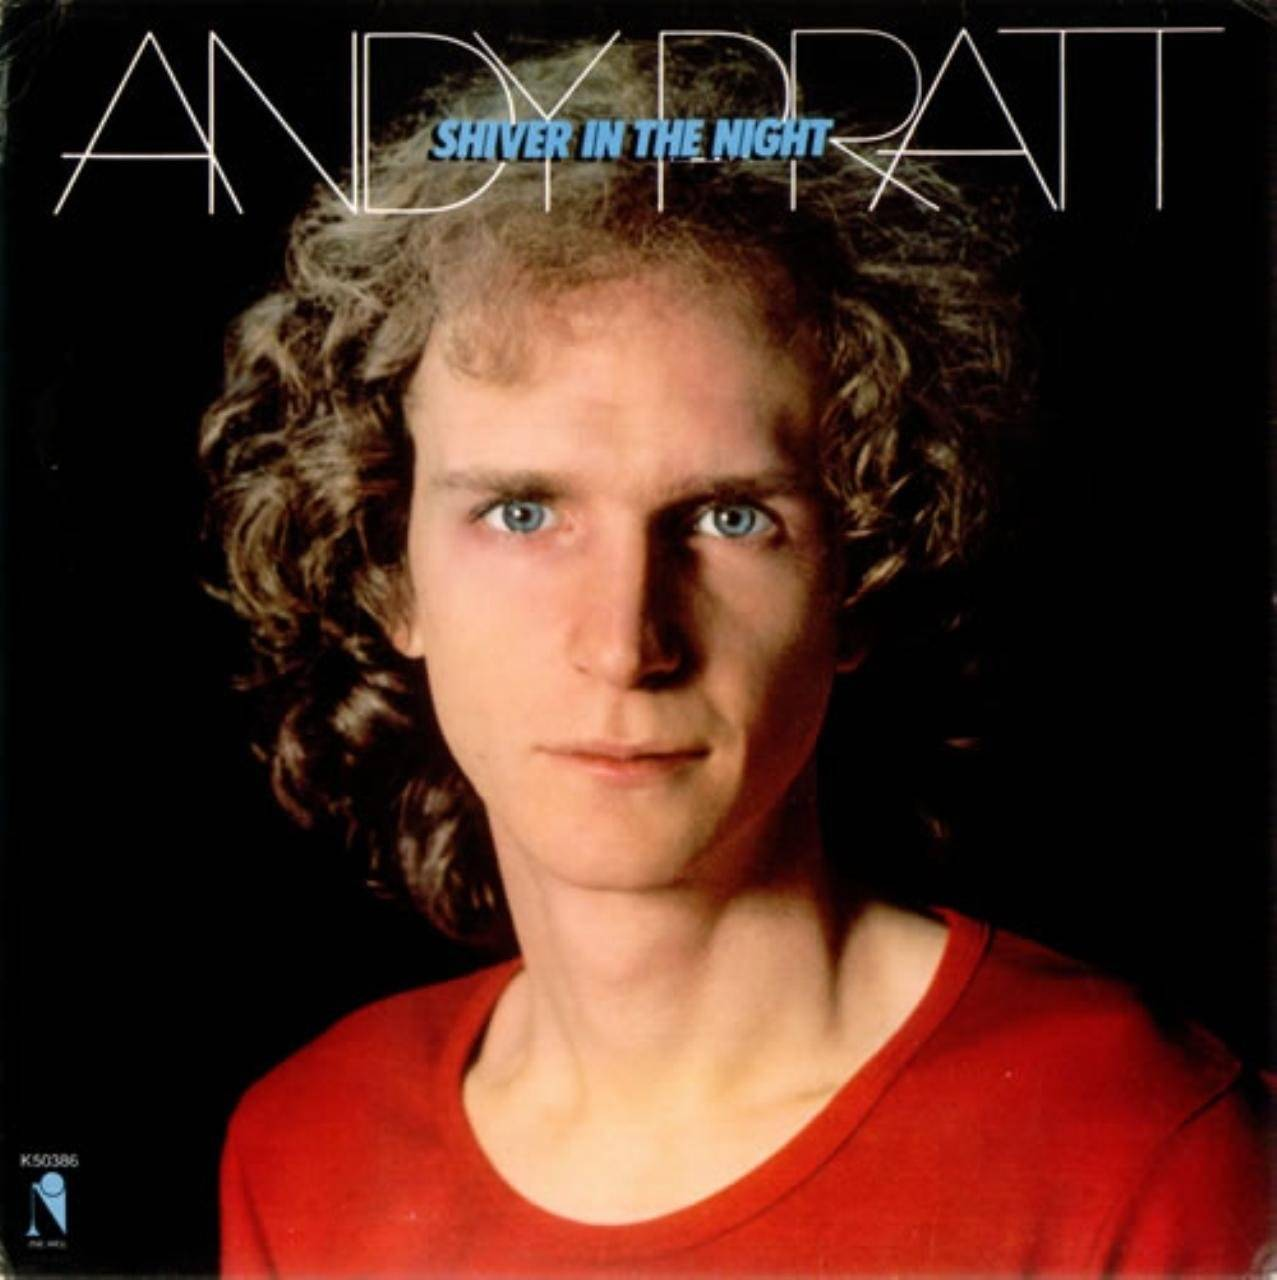 Andy Pratt - Shiver in the Night CD (紙ジャケット仕様)